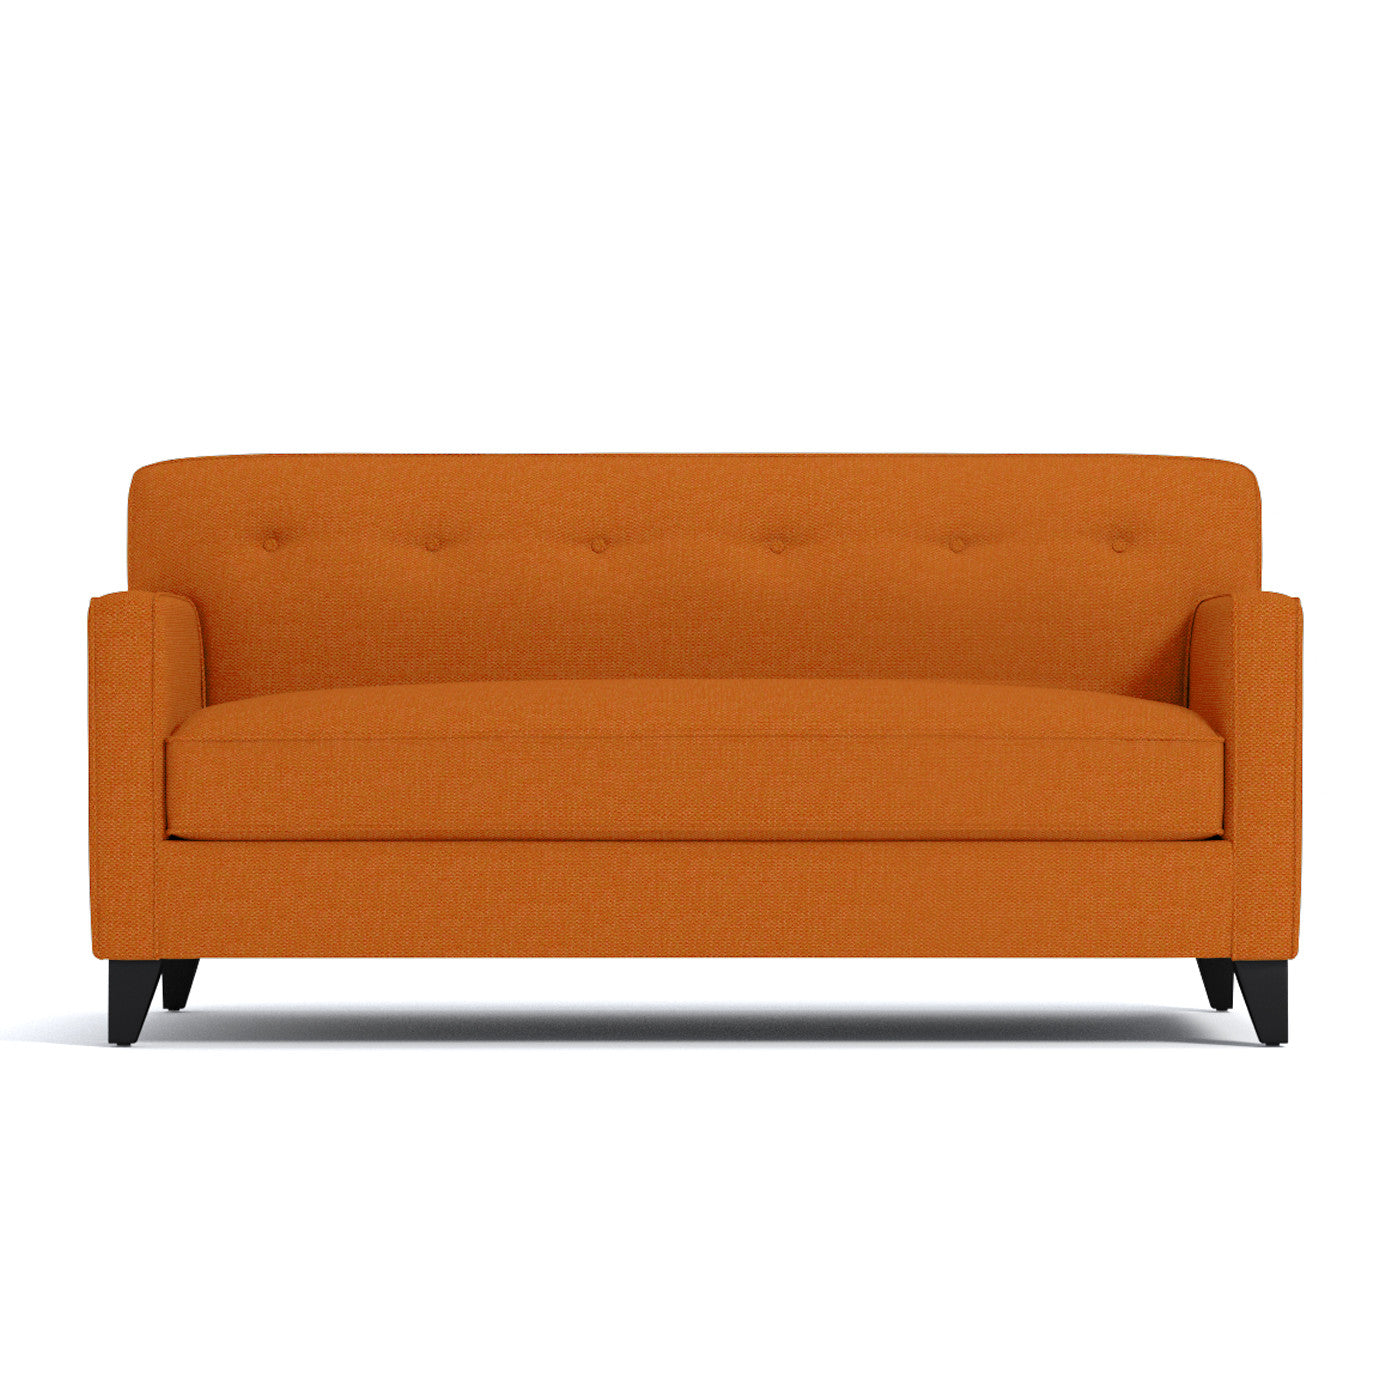 Apartment Furniture - Harrison Sofa - Kyle Schuneman – Apt2B